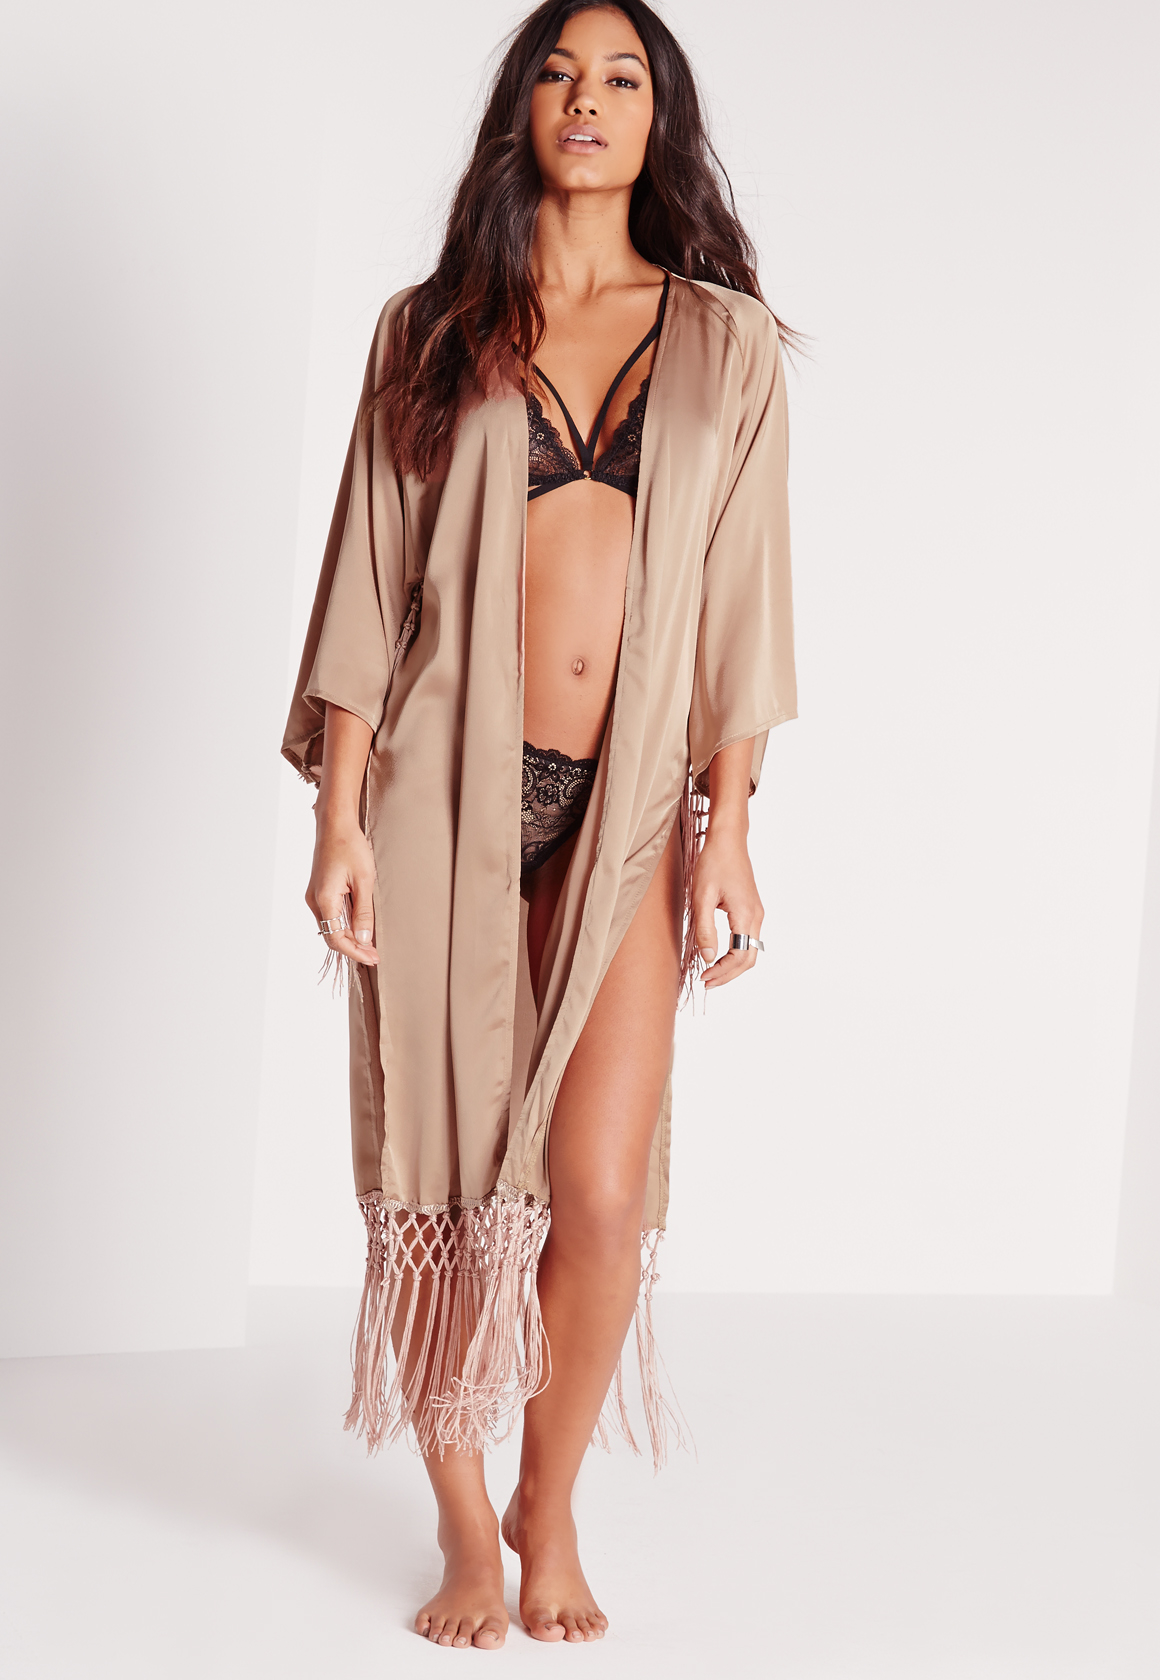 Lyst - Missguided Luxe Tassel Satin Dressing Gown Nude in Brown